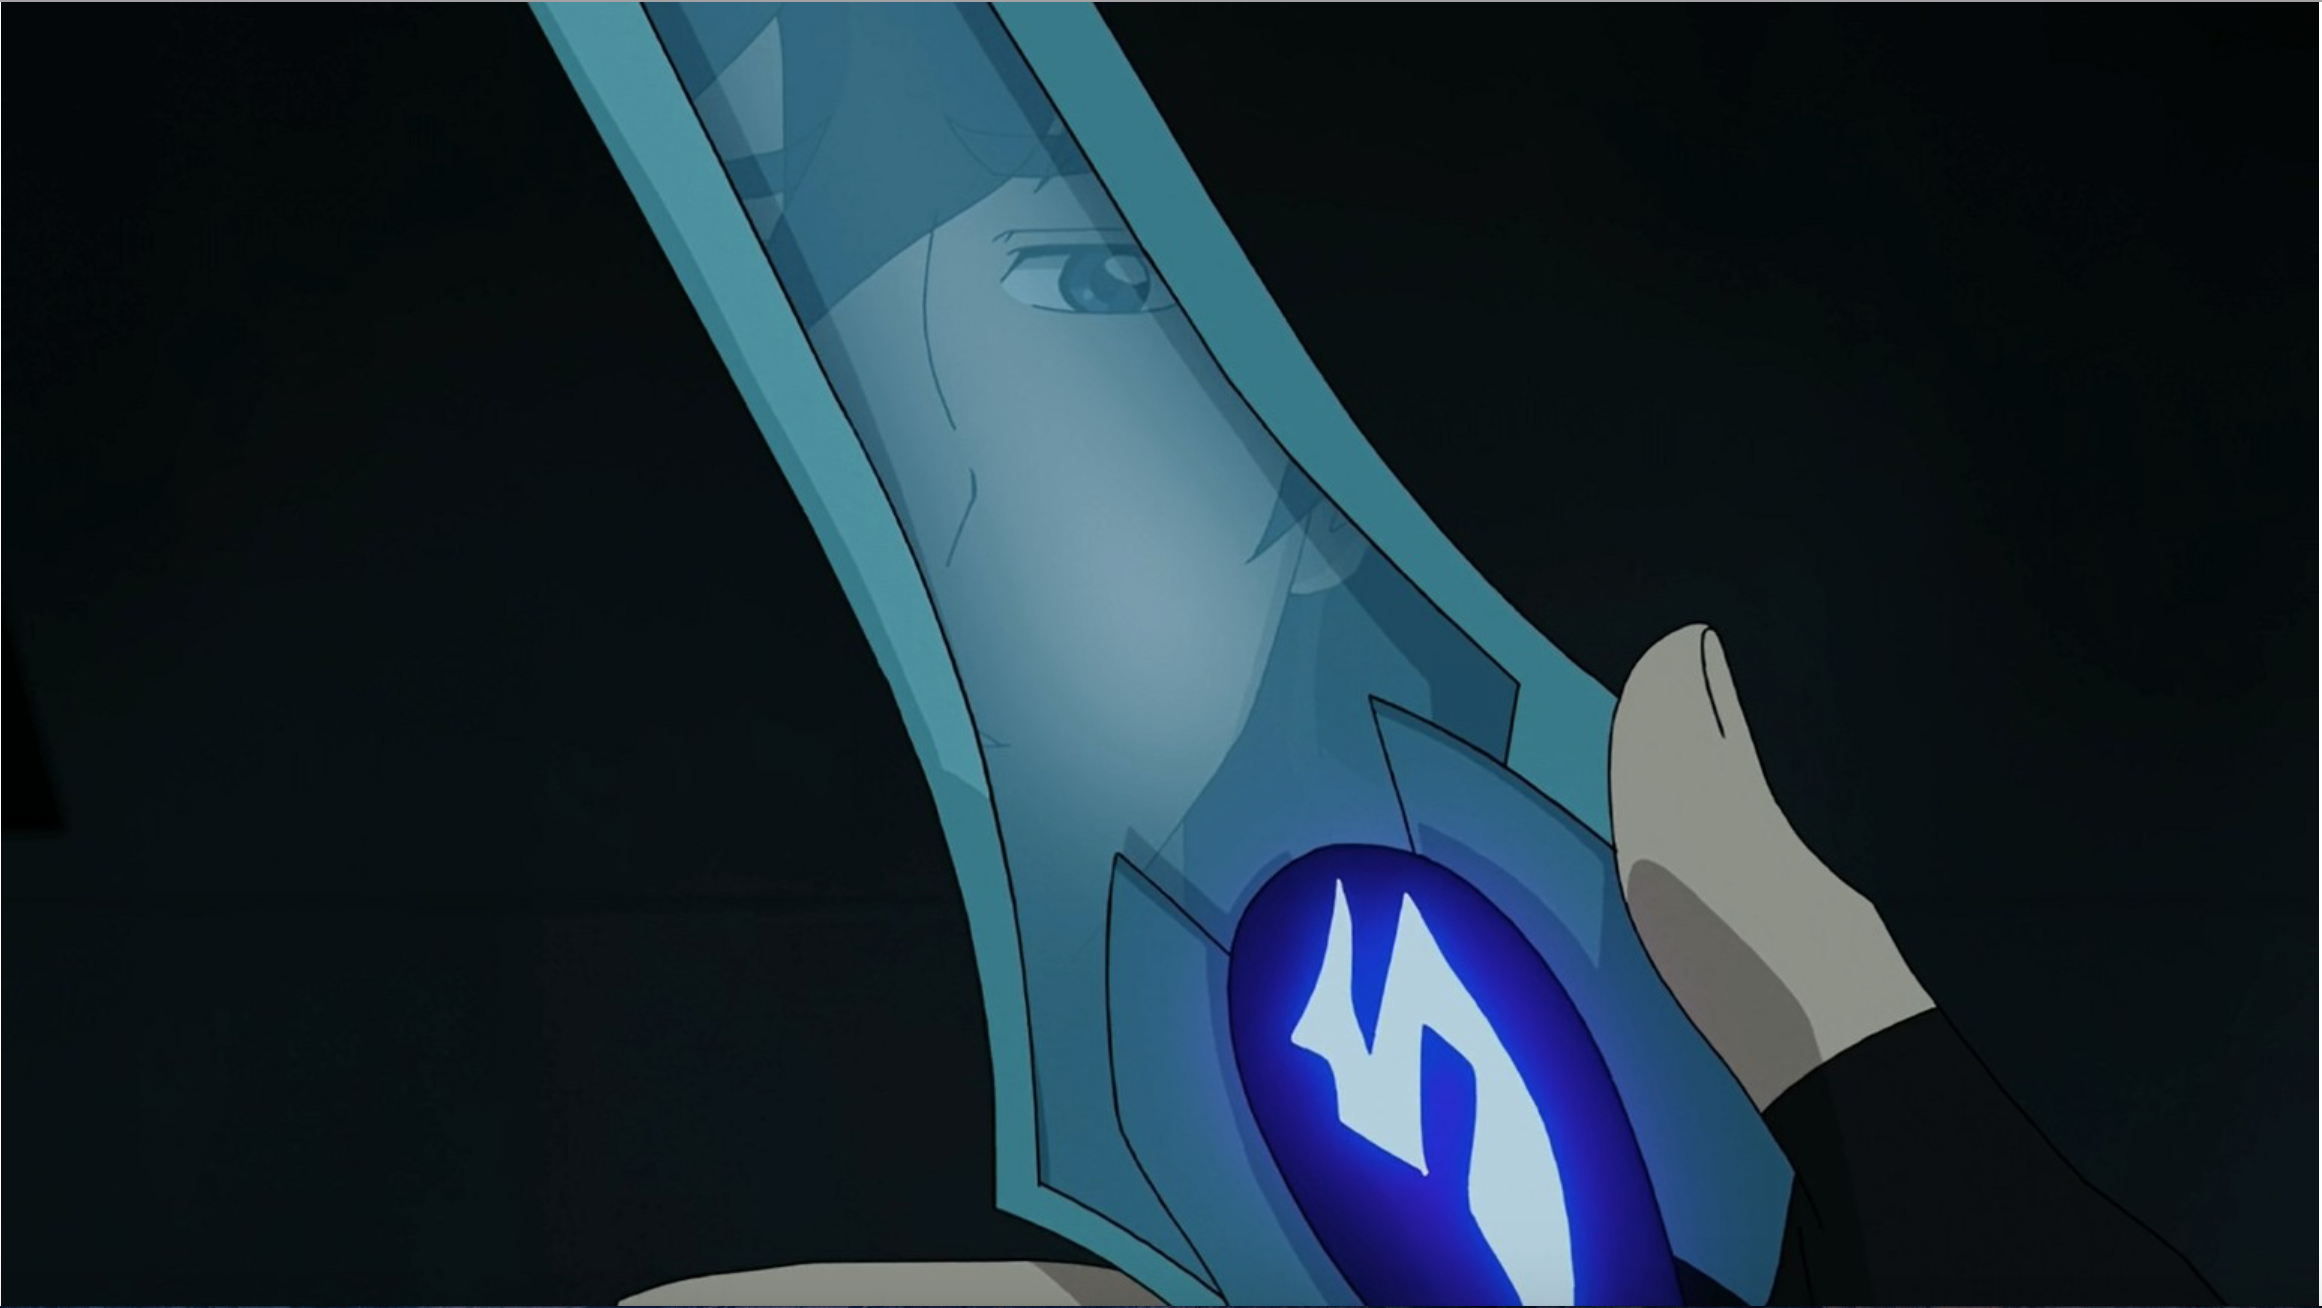 Keiths knife blade with a blade of marmora galra symbol on it keiths knife blade with a blade of marmora galra symbol on it from voltron legendary defender biocorpaavc